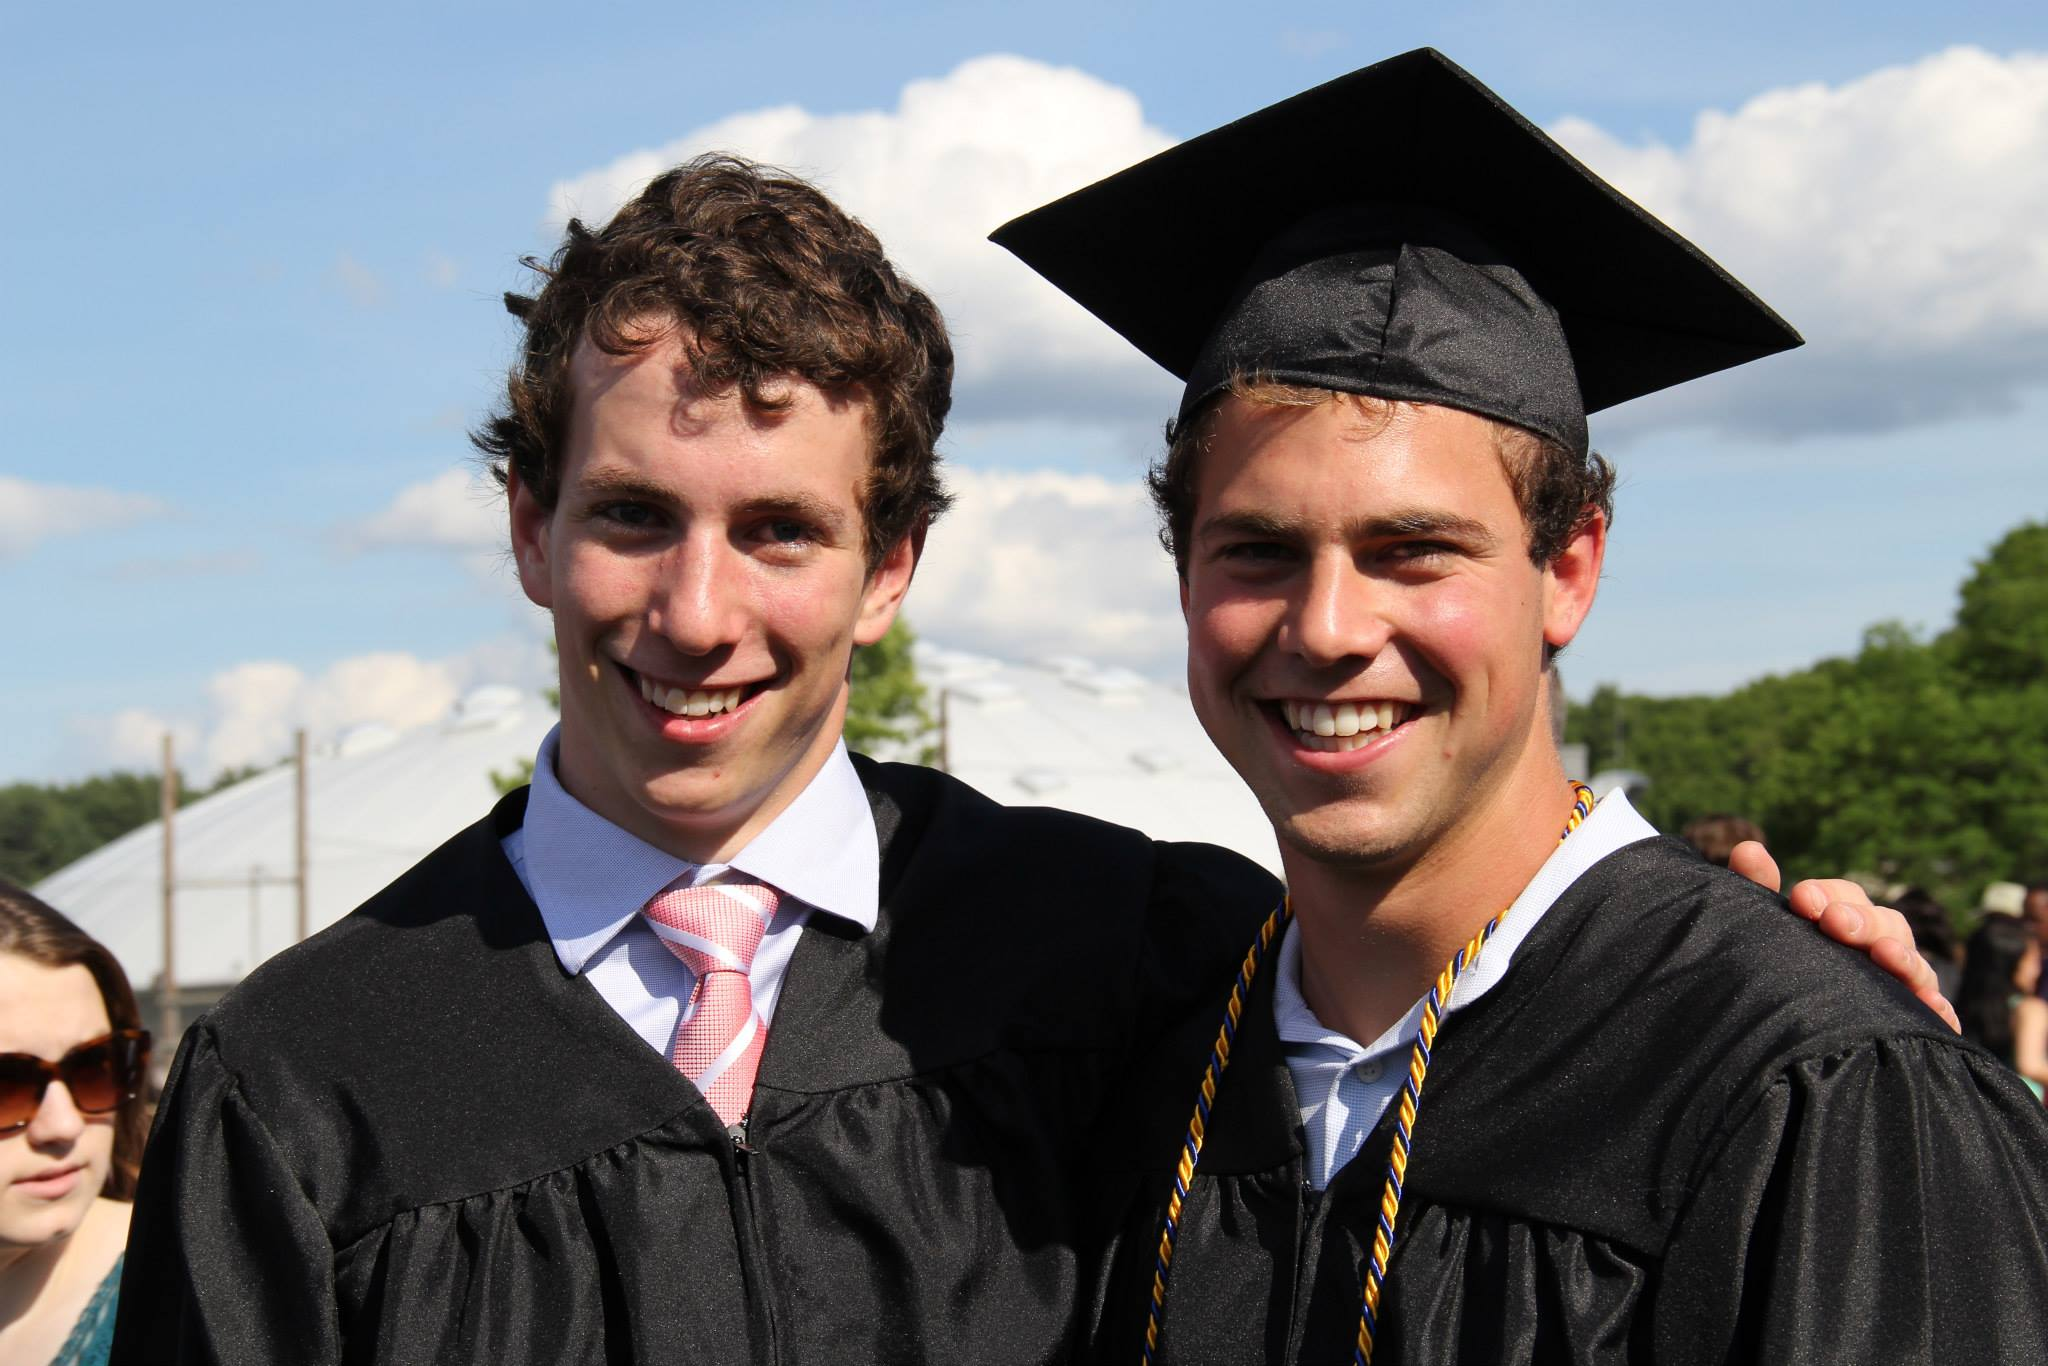 Jacob and Zander at their high school graduation.